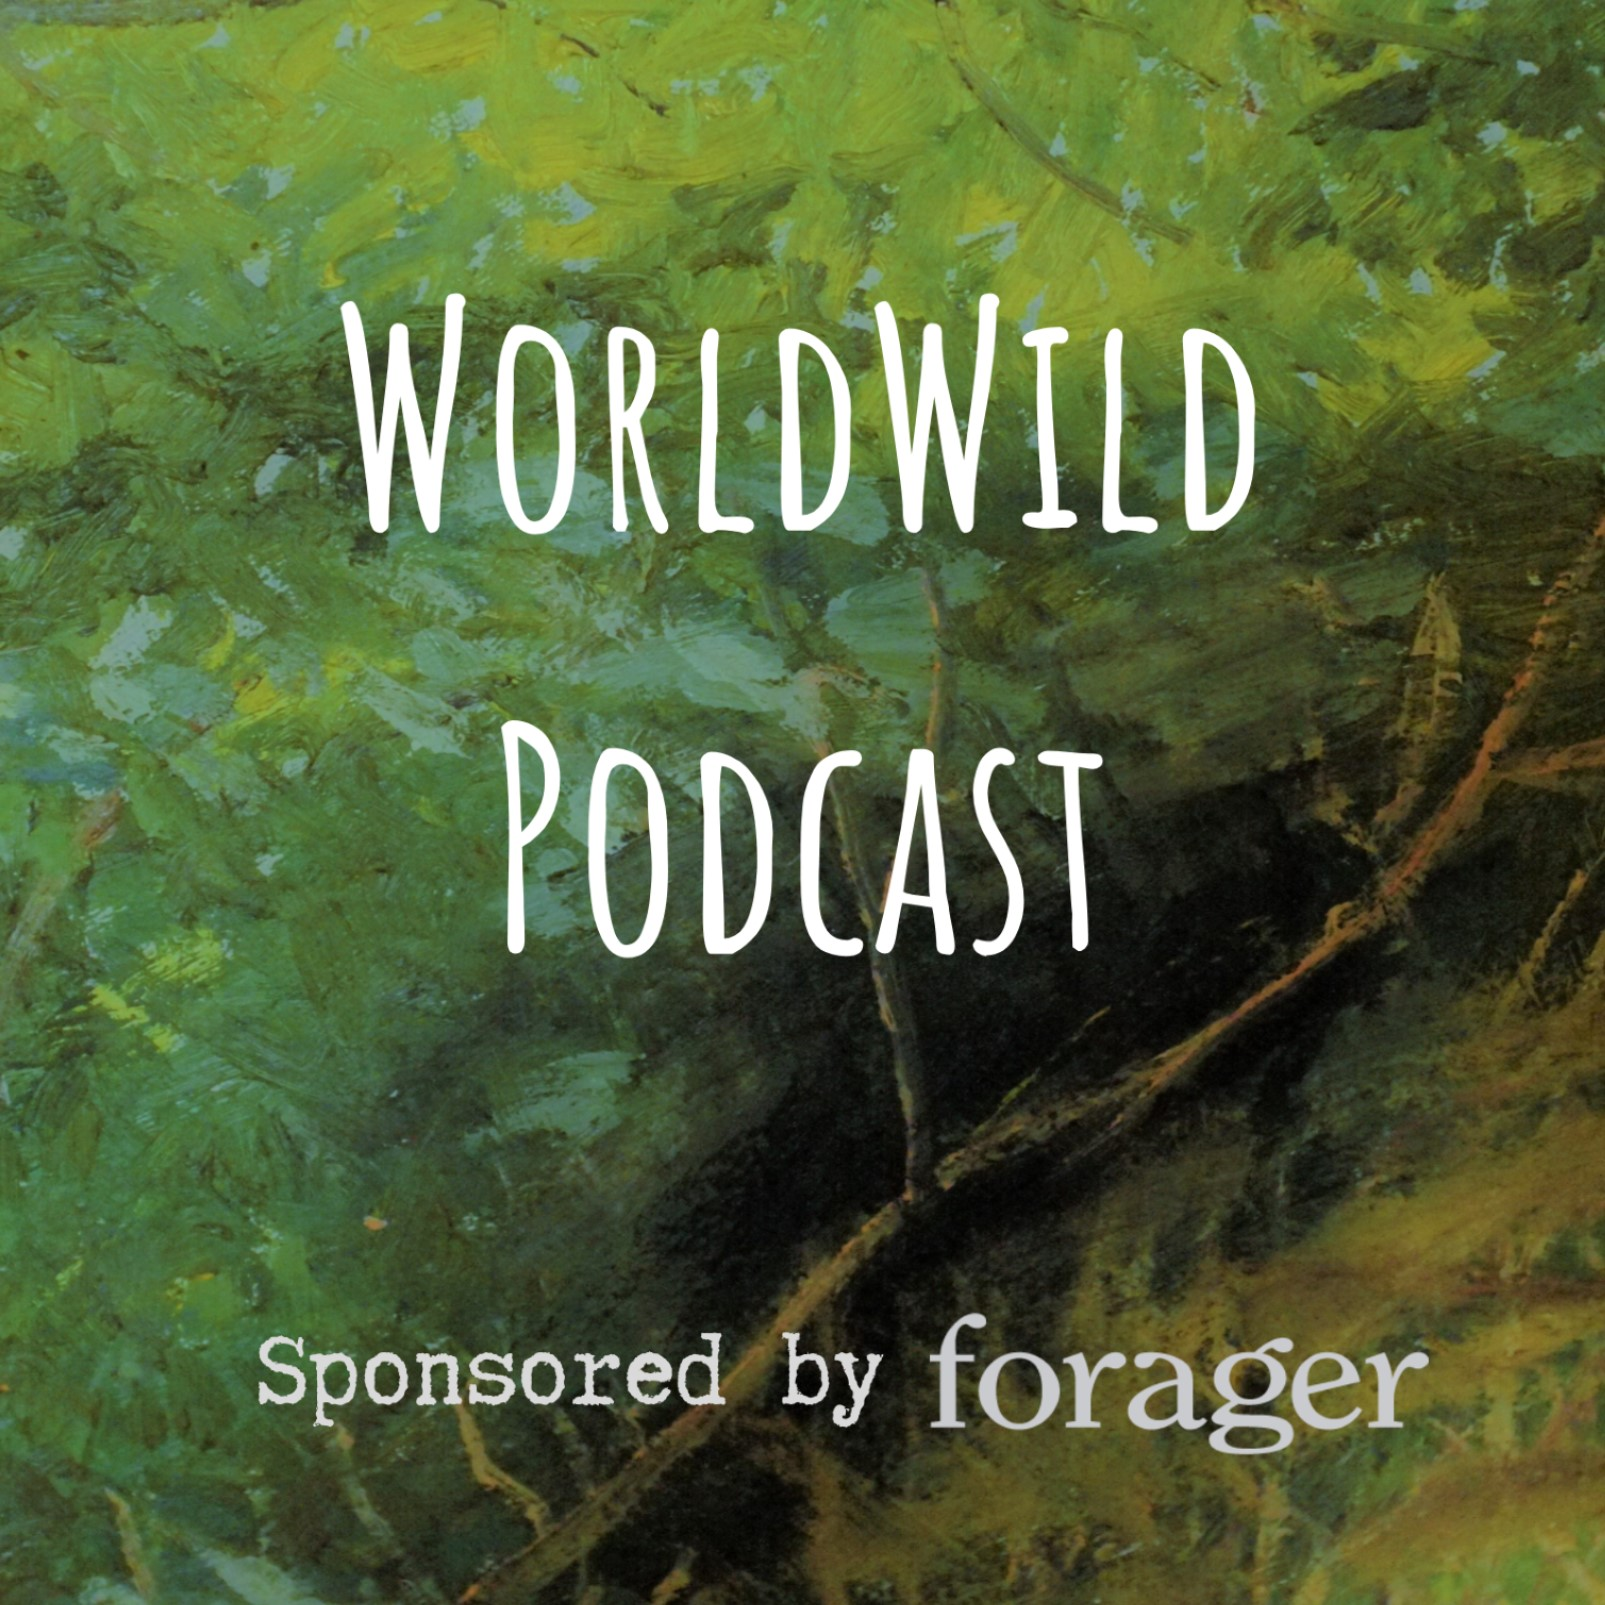 WorldWild Podcast